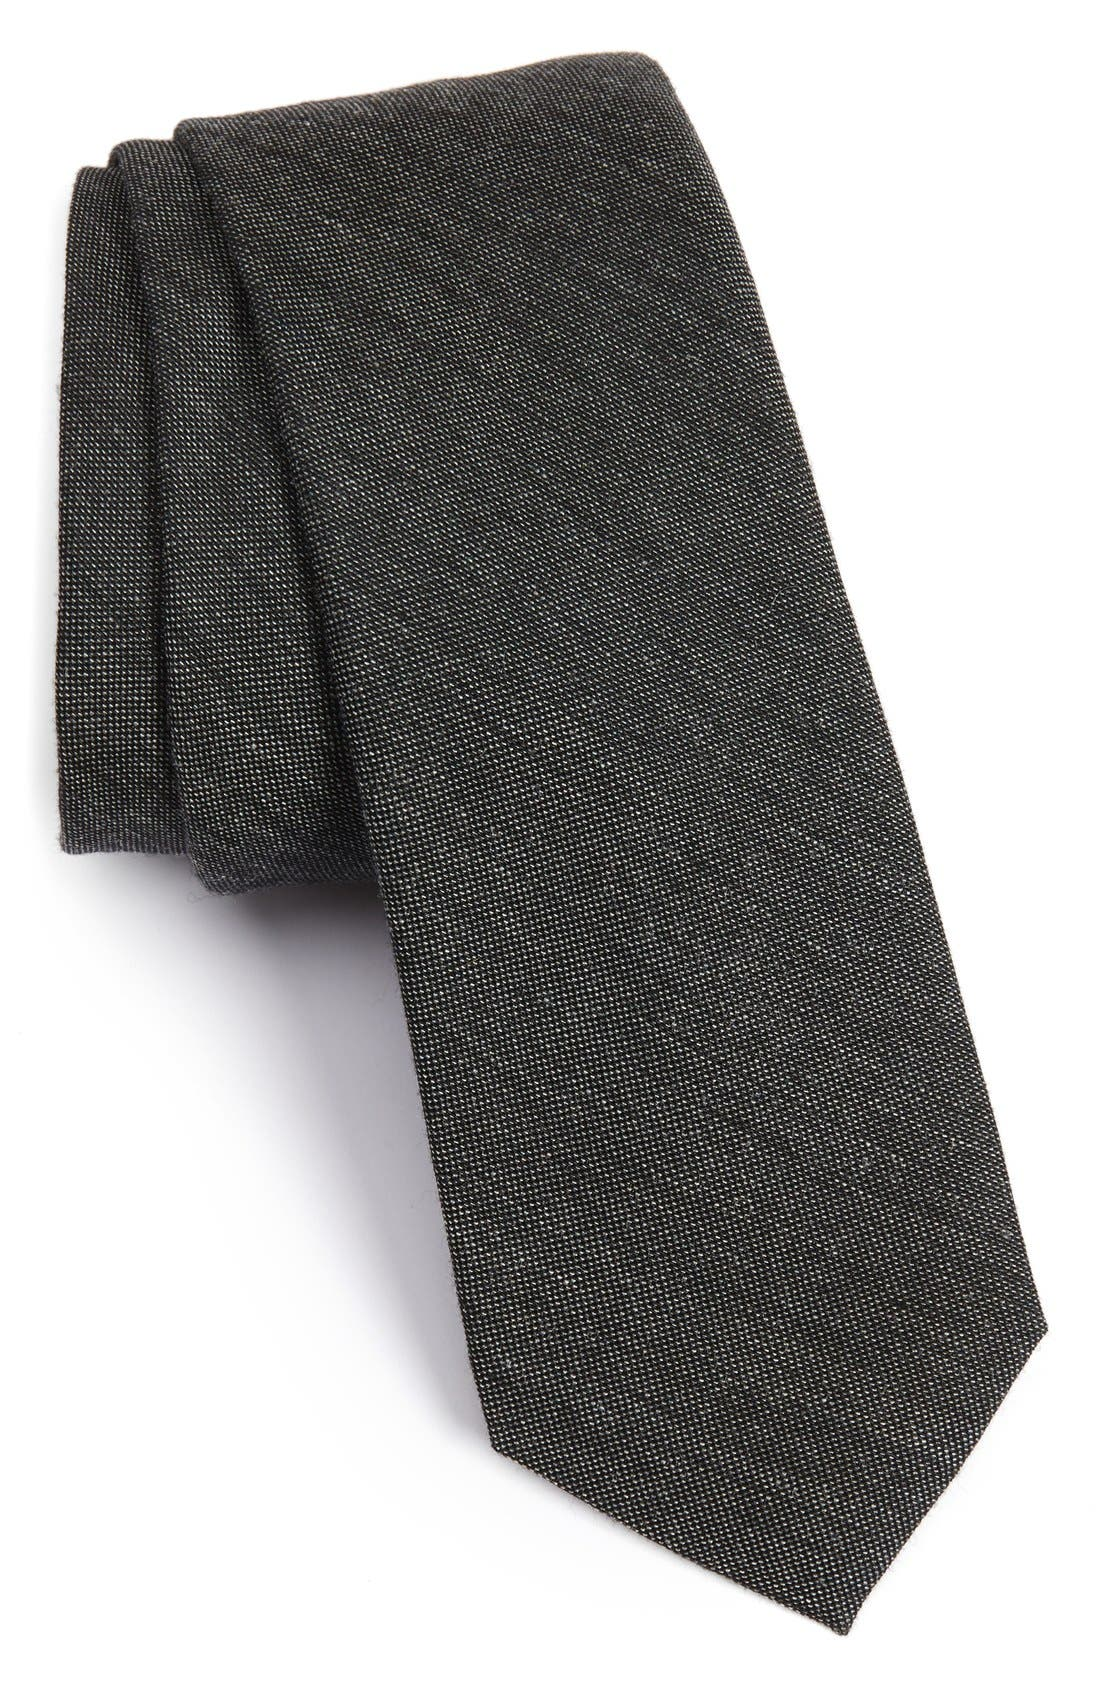 CALIBRATE Mélange Woven Skinny Tie